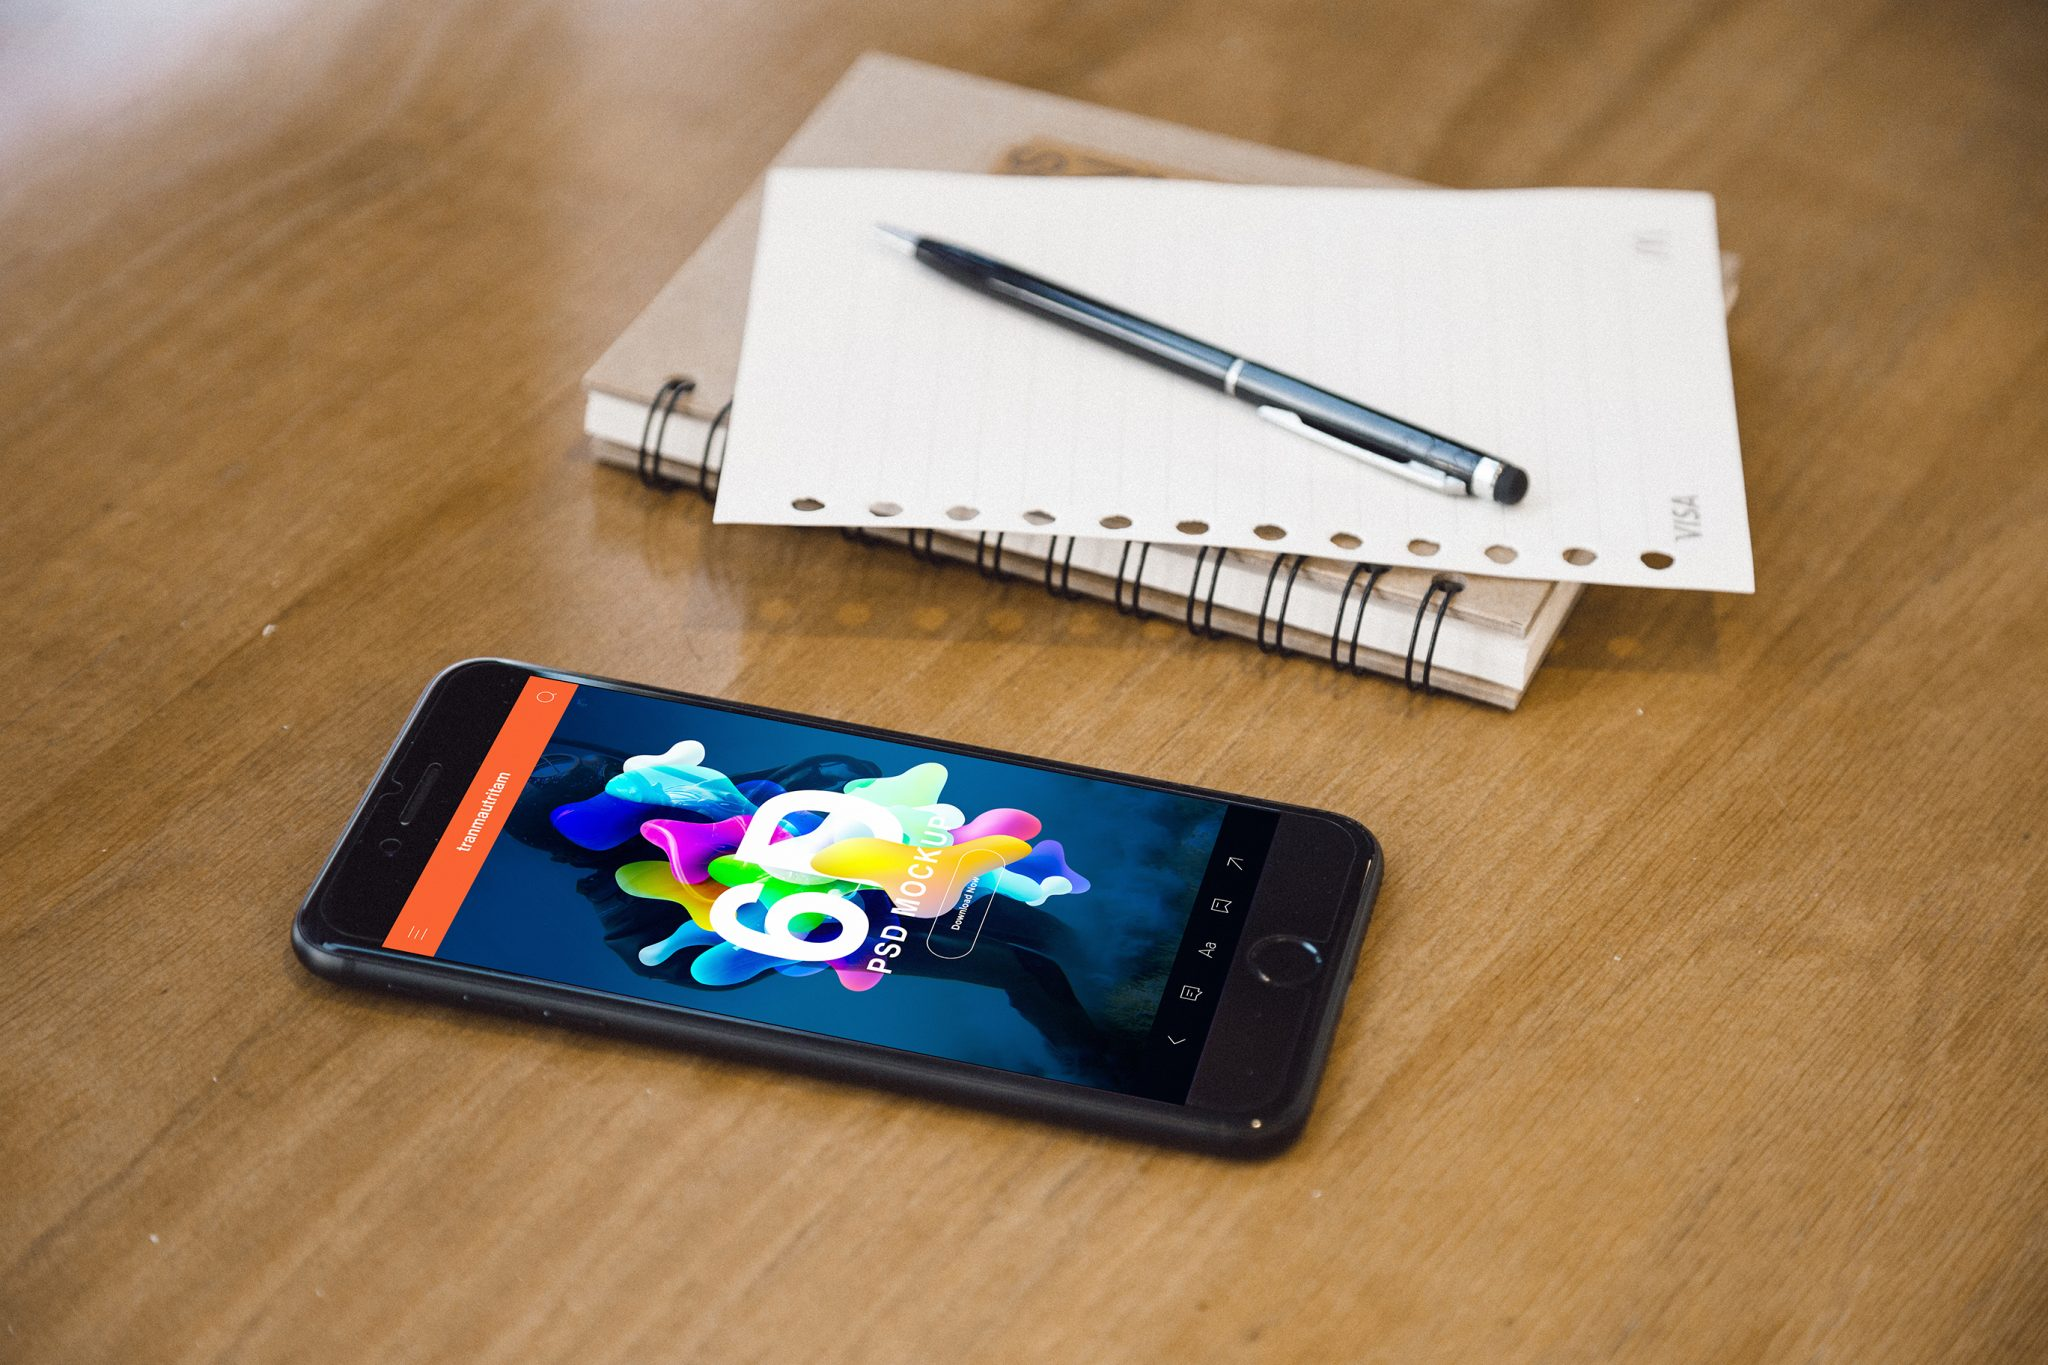 Realistic iPhone 7 Mockup for Photoshop - App Designers Resource